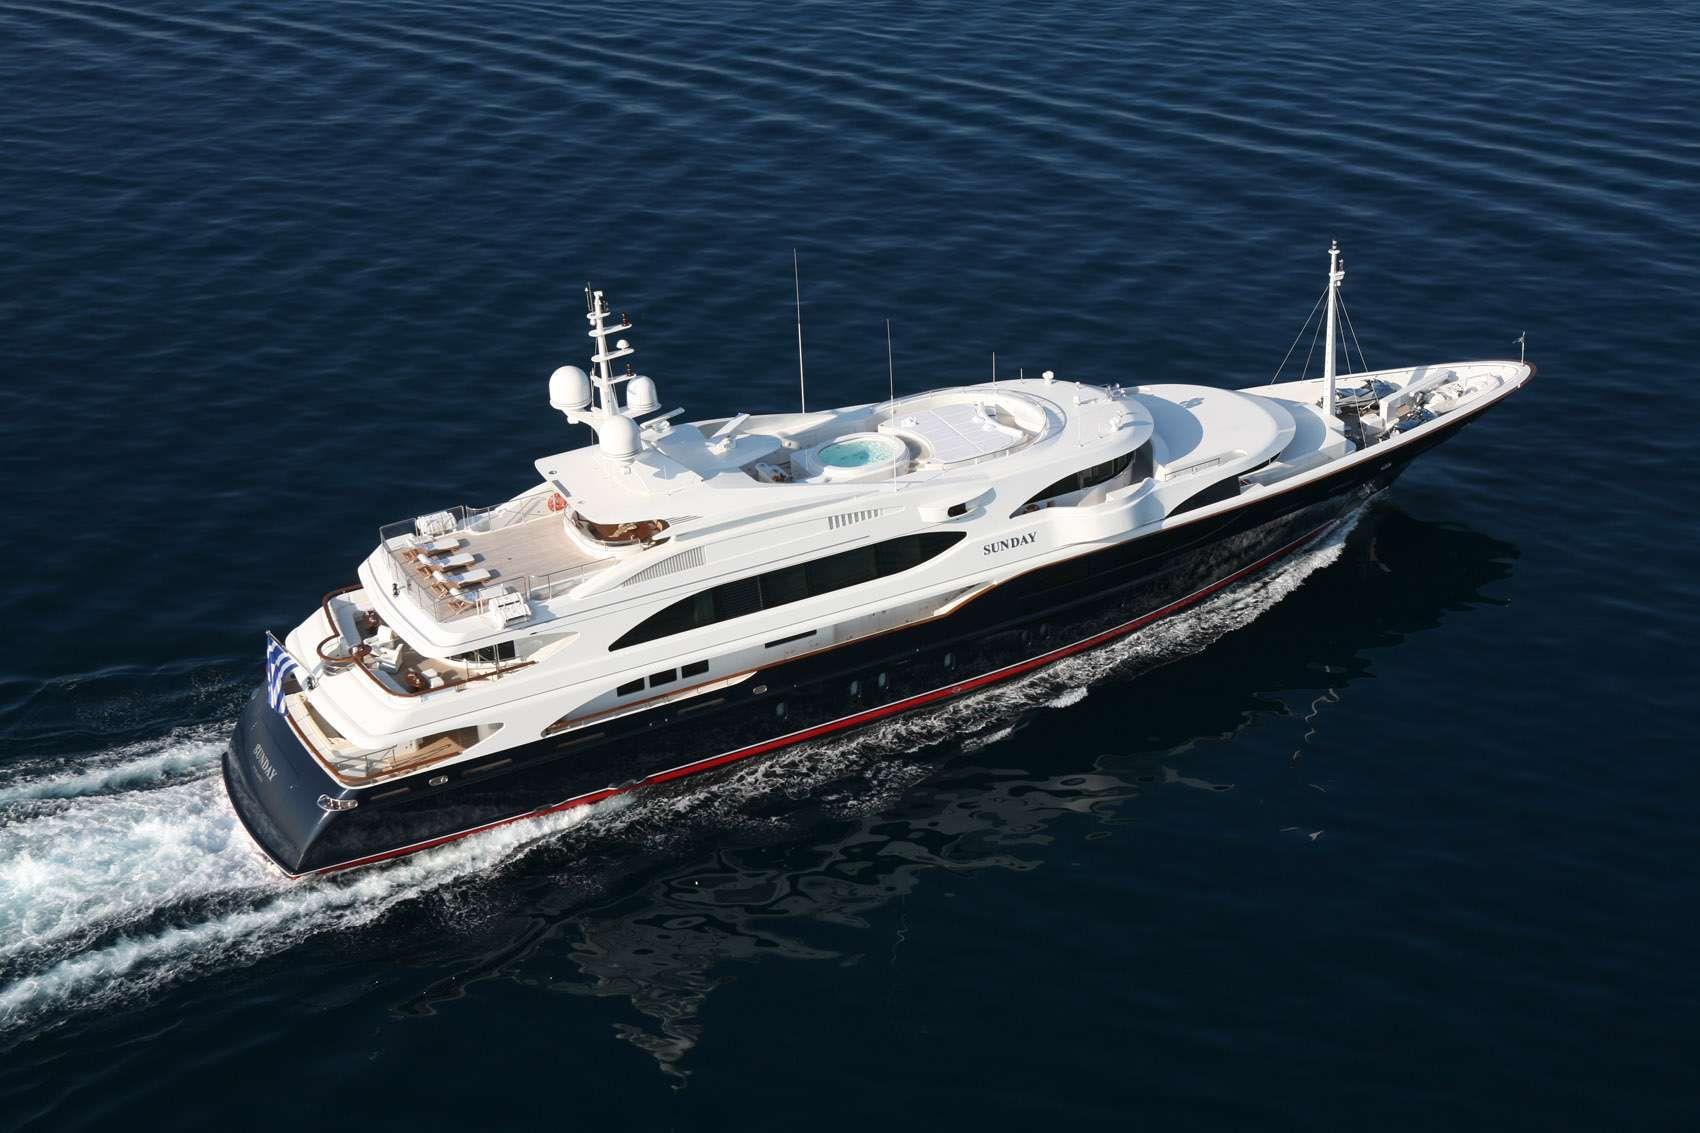 SUNDAY Yacht Charter - Ritzy Charters